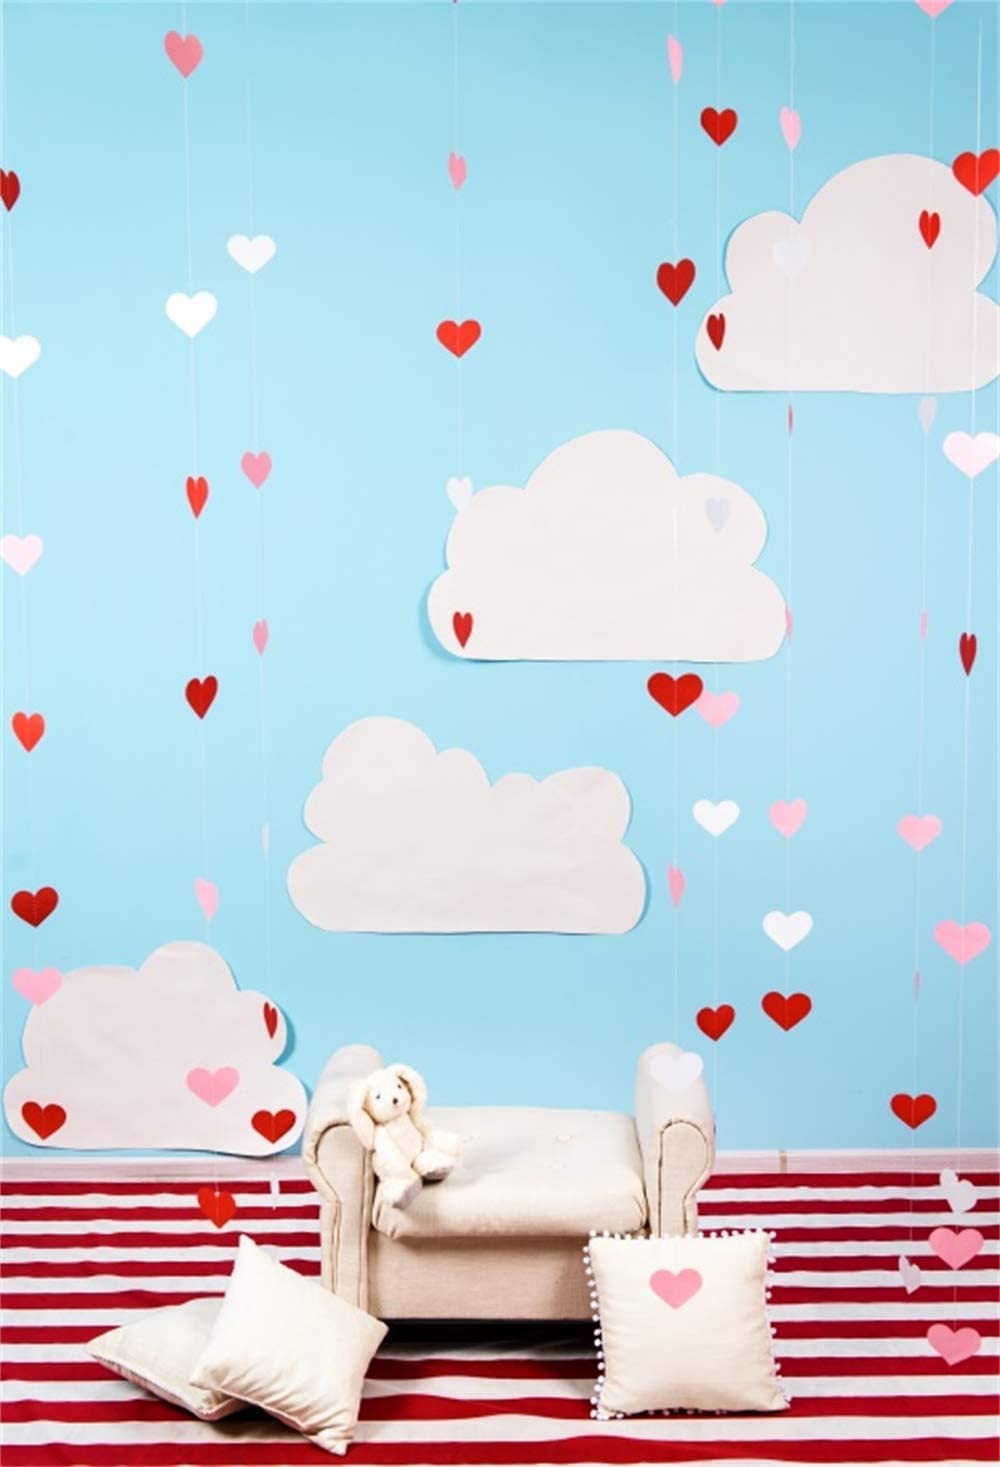 7x10 FT Love Vinyl Photography Background Backdrops,Hand Drawn Style Doodle Hearts Valentines Day Romance Hipster Modern Pattern Background Newborn Baby Portrait Photo Studio Photobooth Props